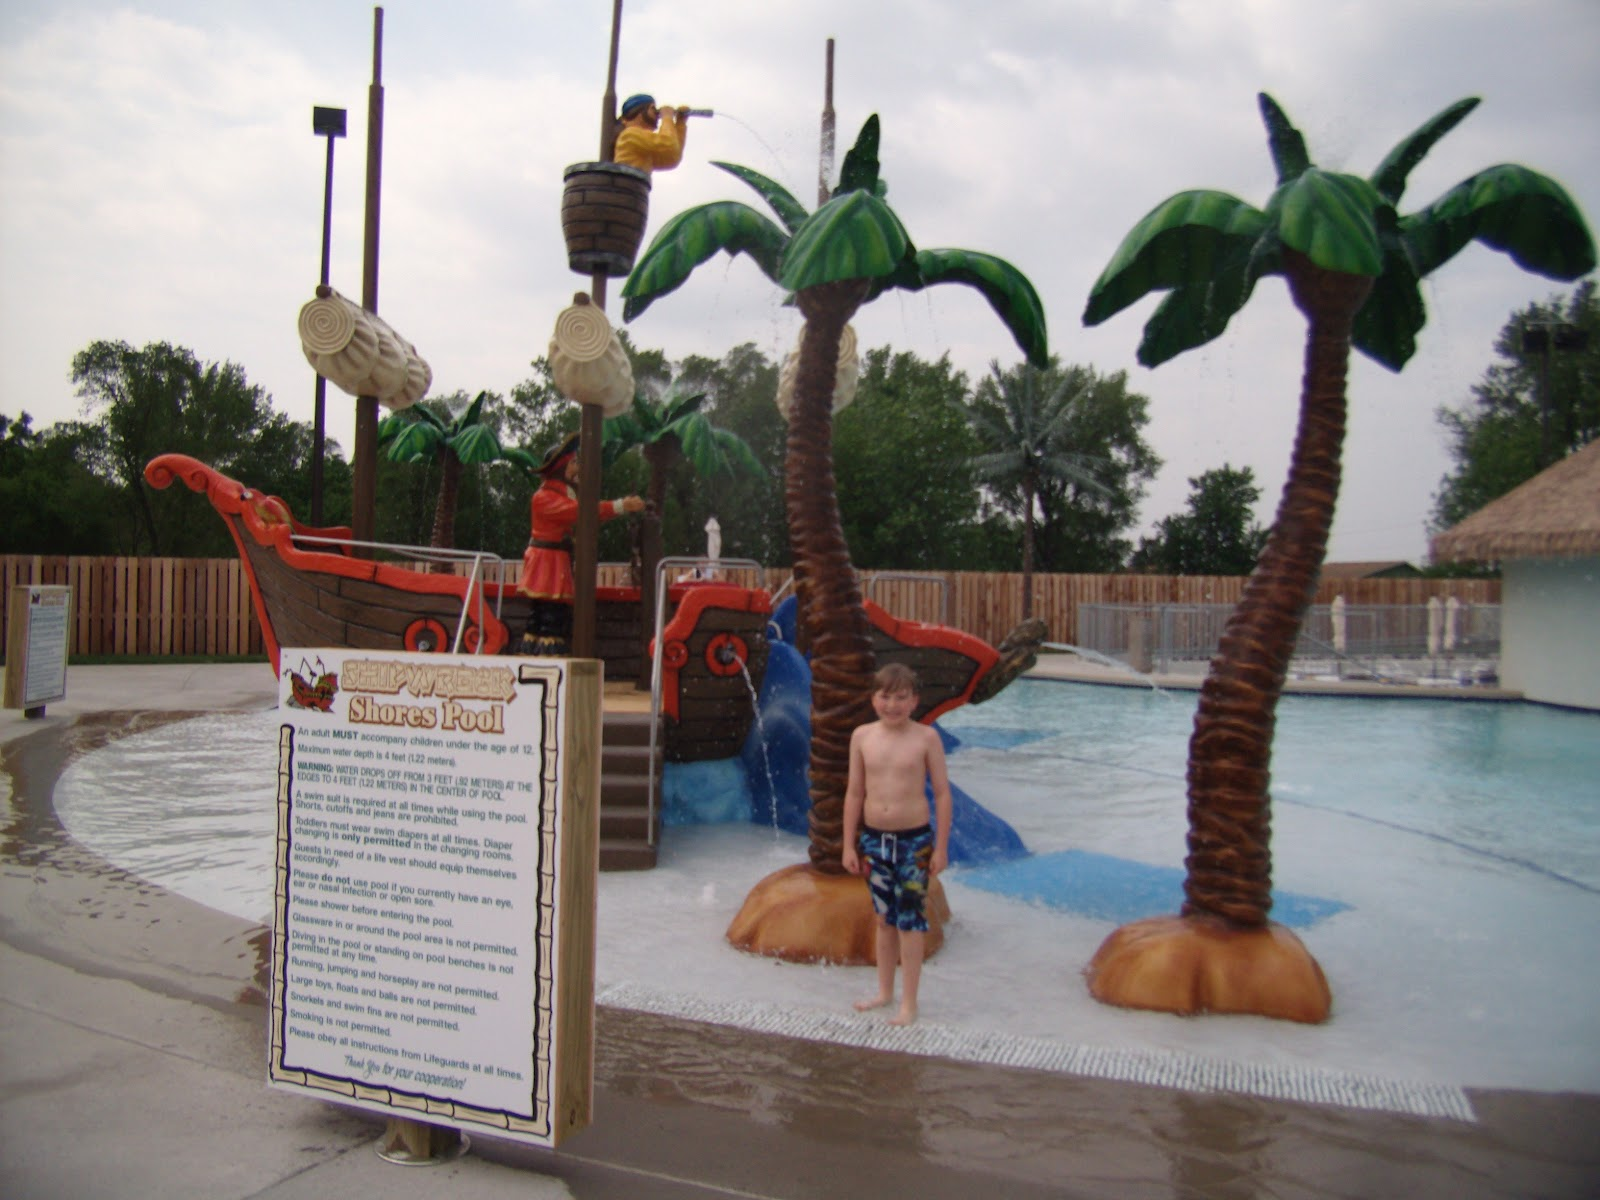 ... shores pool offers kids and kids at heart a pirate ship to play on and